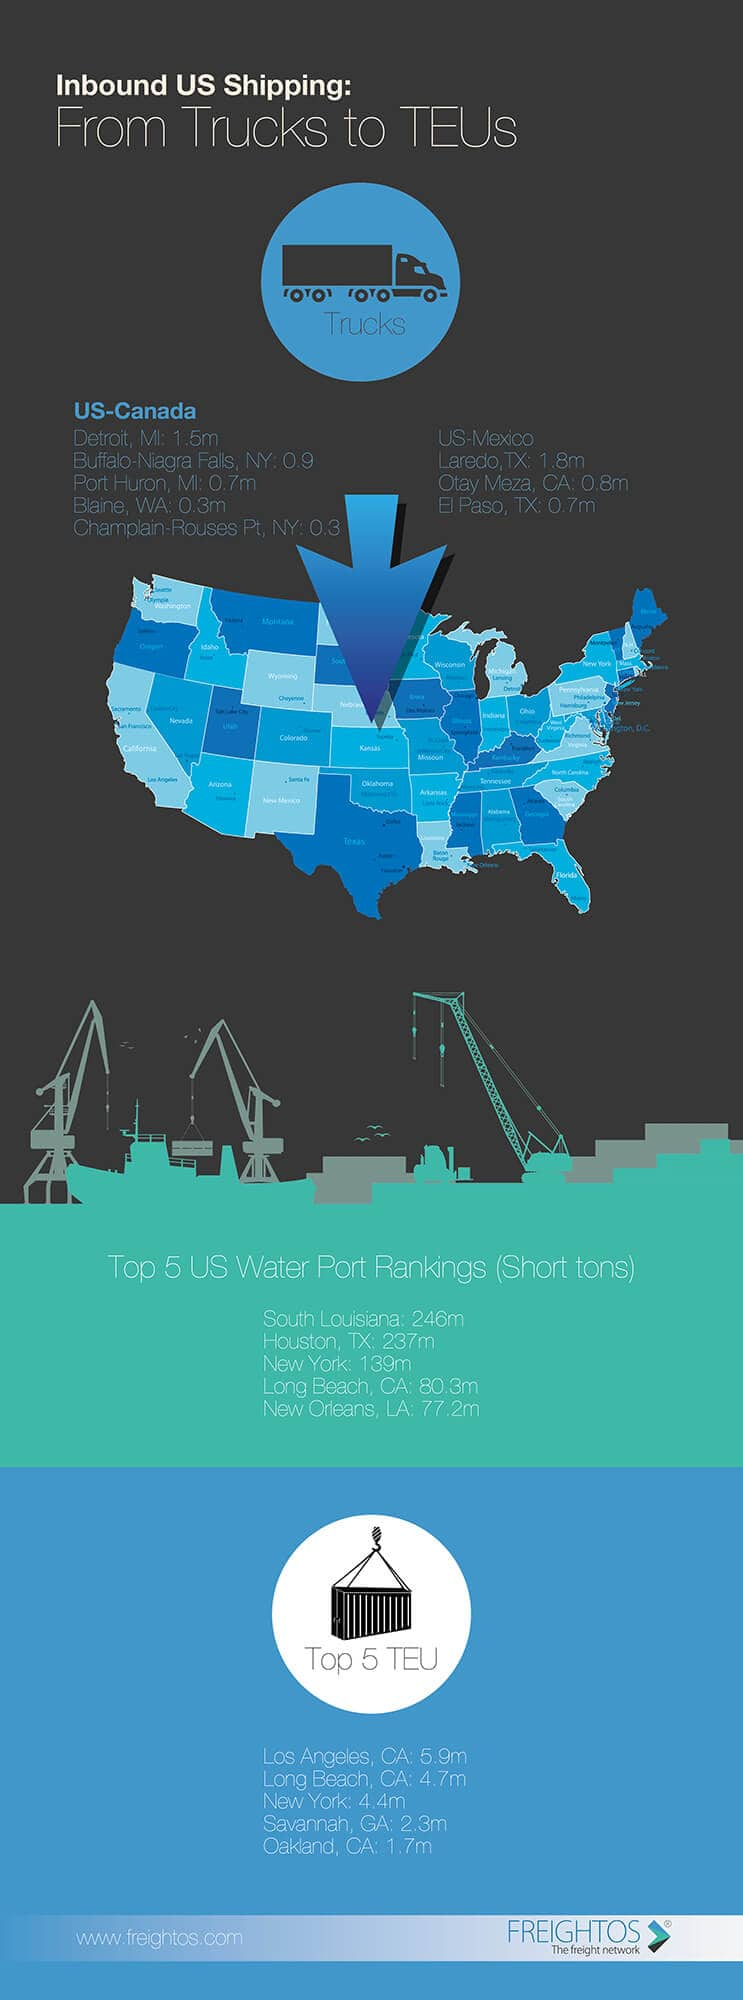 Infographic comparing maritime and land/truck imports